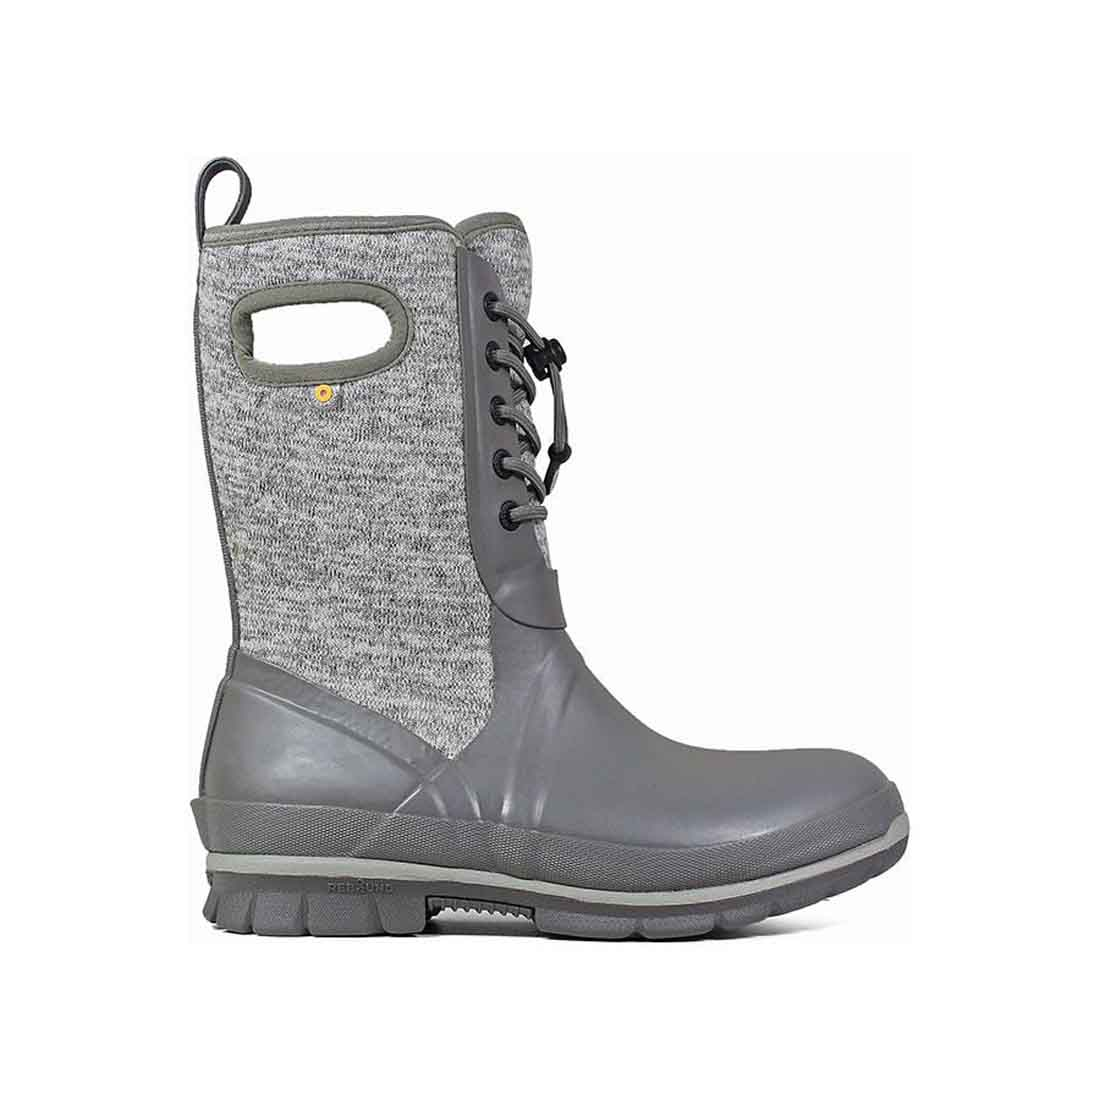 BOGS Crandall Lace-Up Knit Boot - Gray_1.jpg